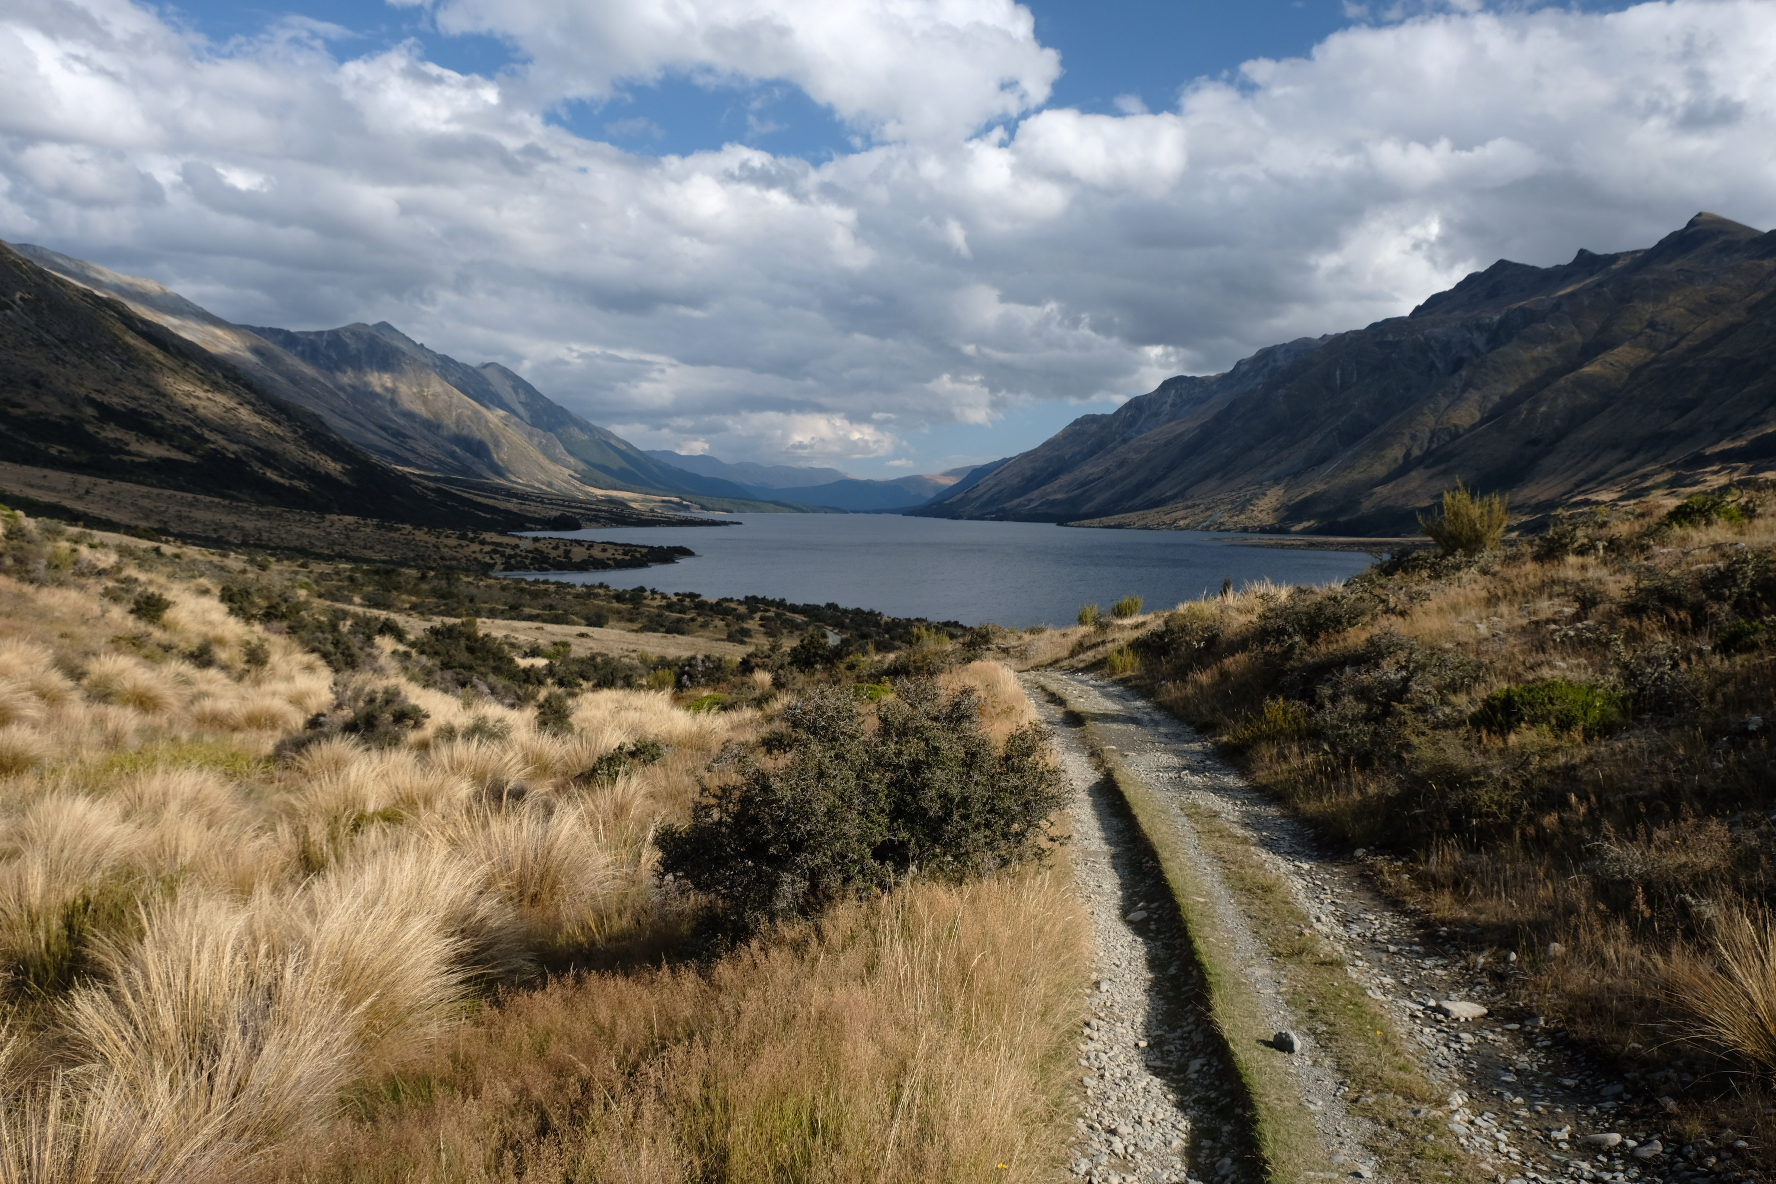 Approaching the Mavora lakes